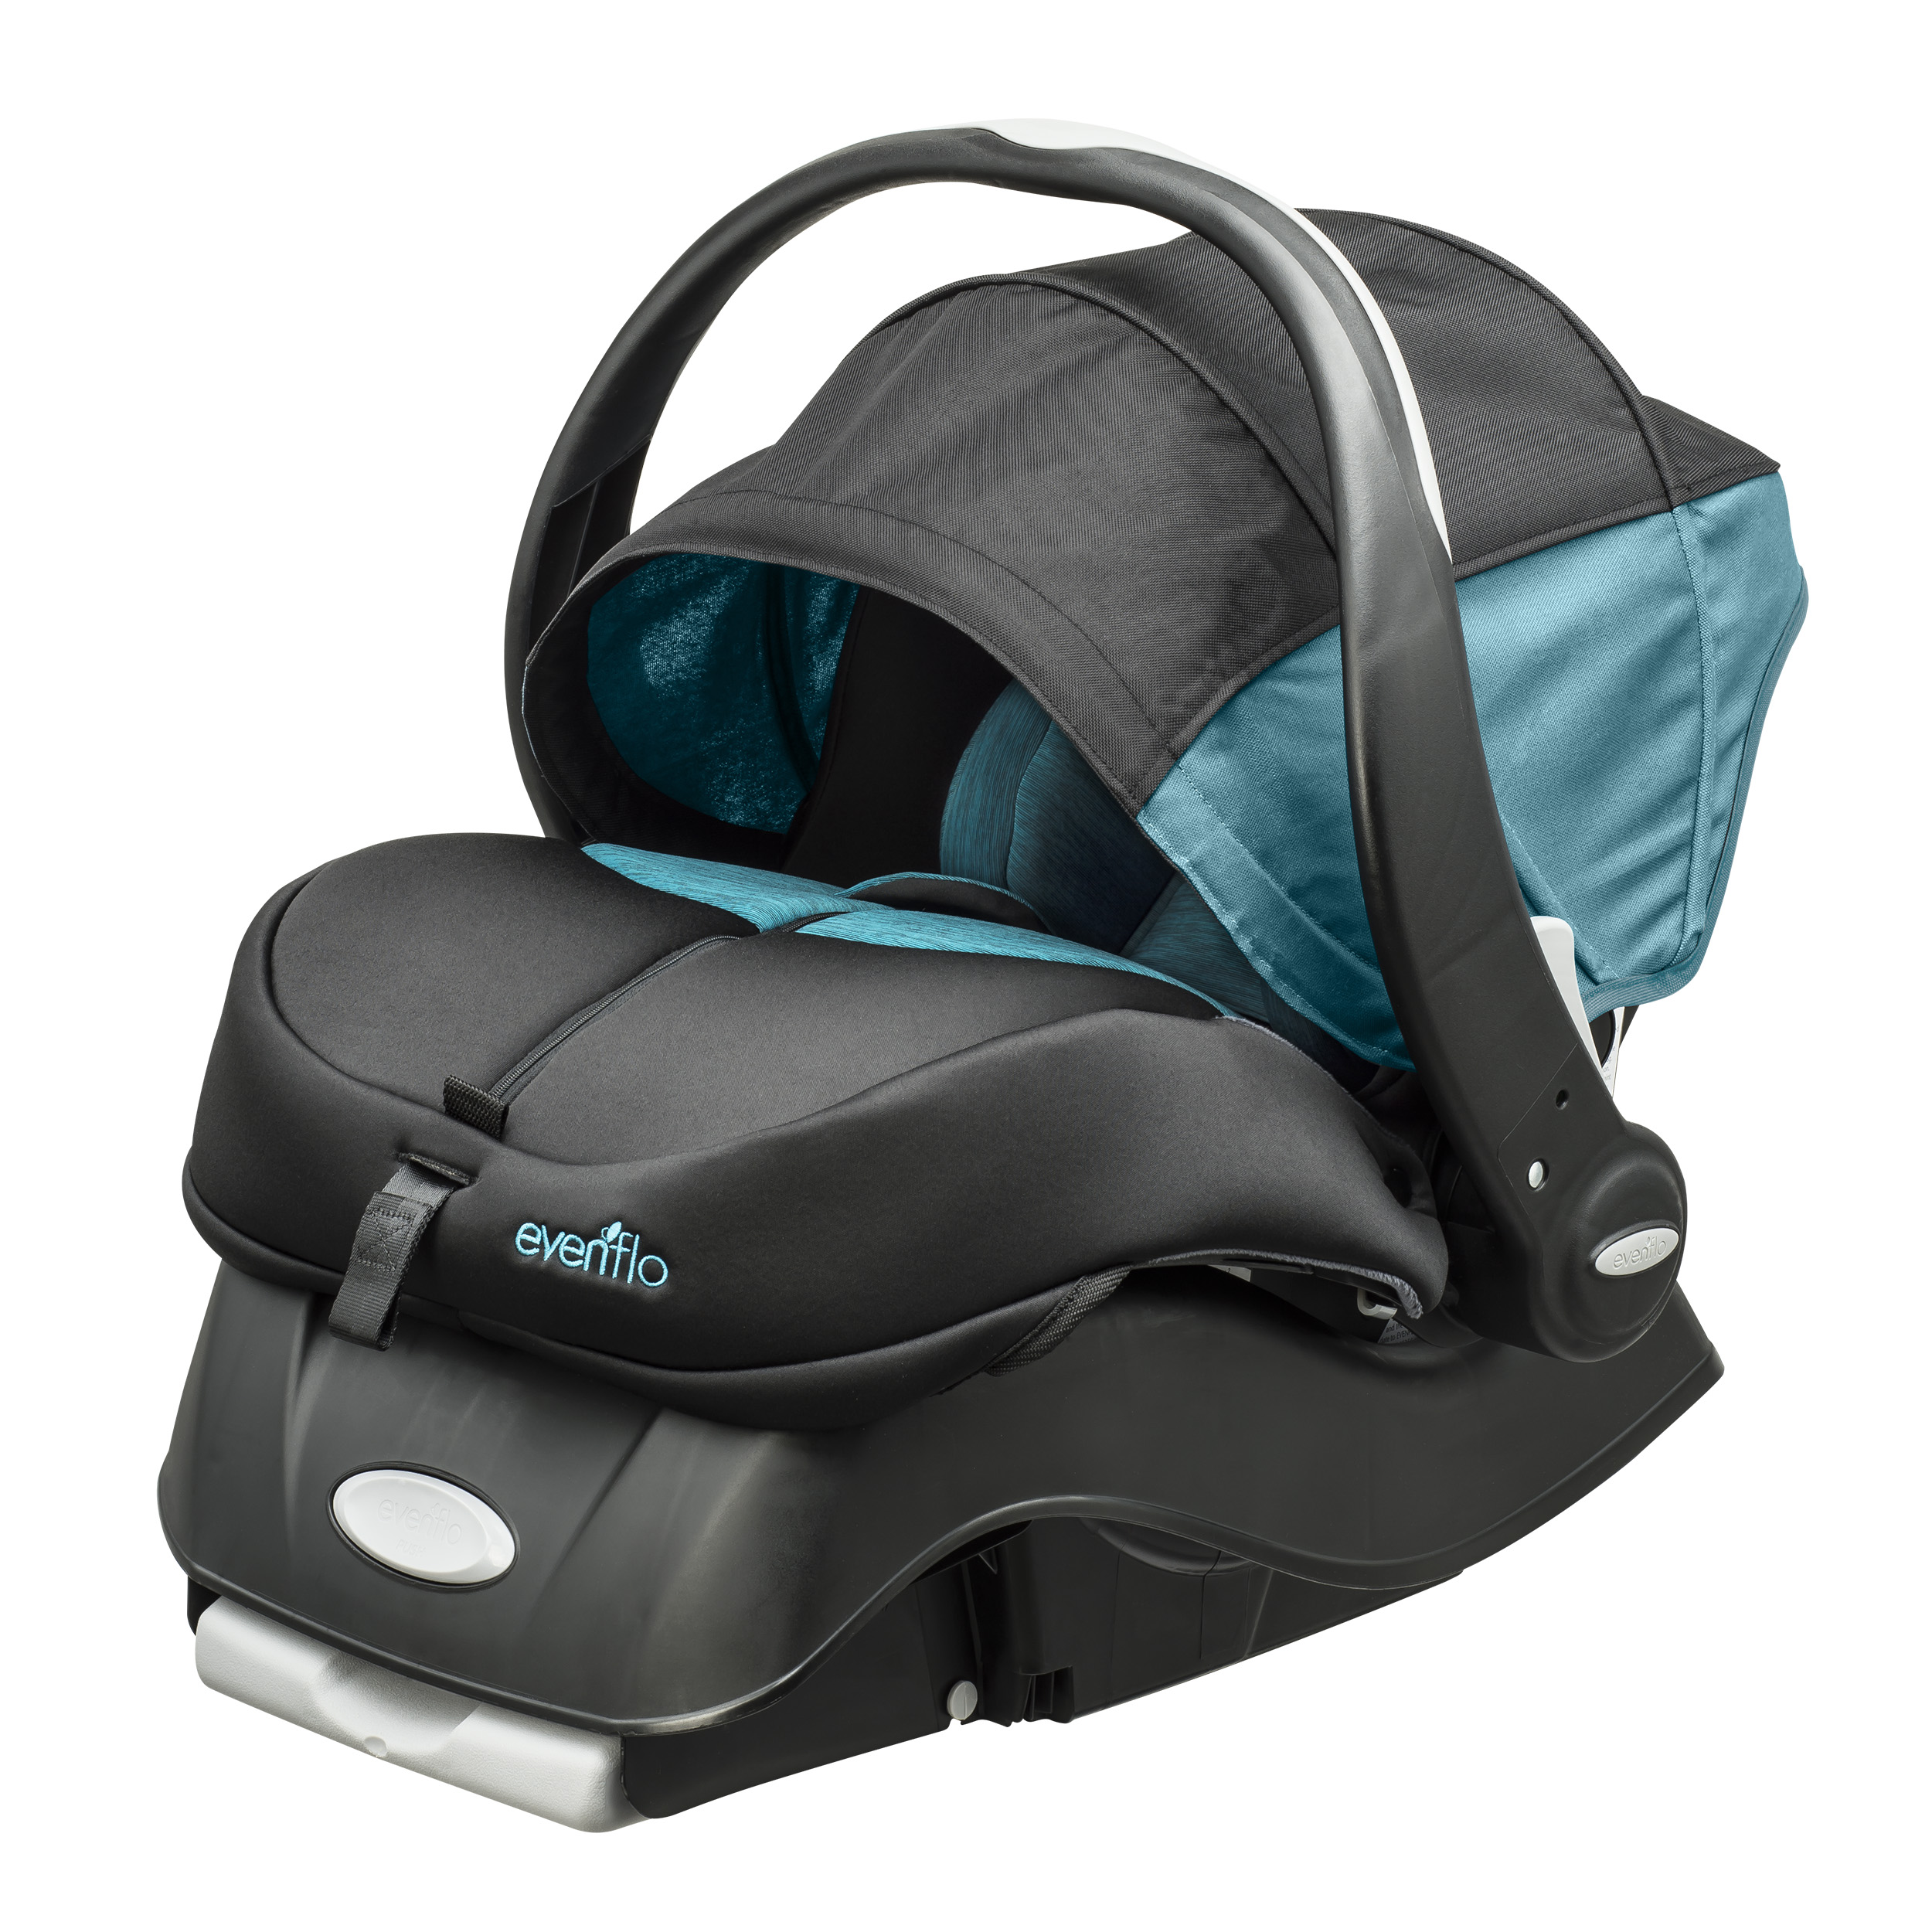 Car Seats A Smart Car Seat That Keeps Your Baby In Mind